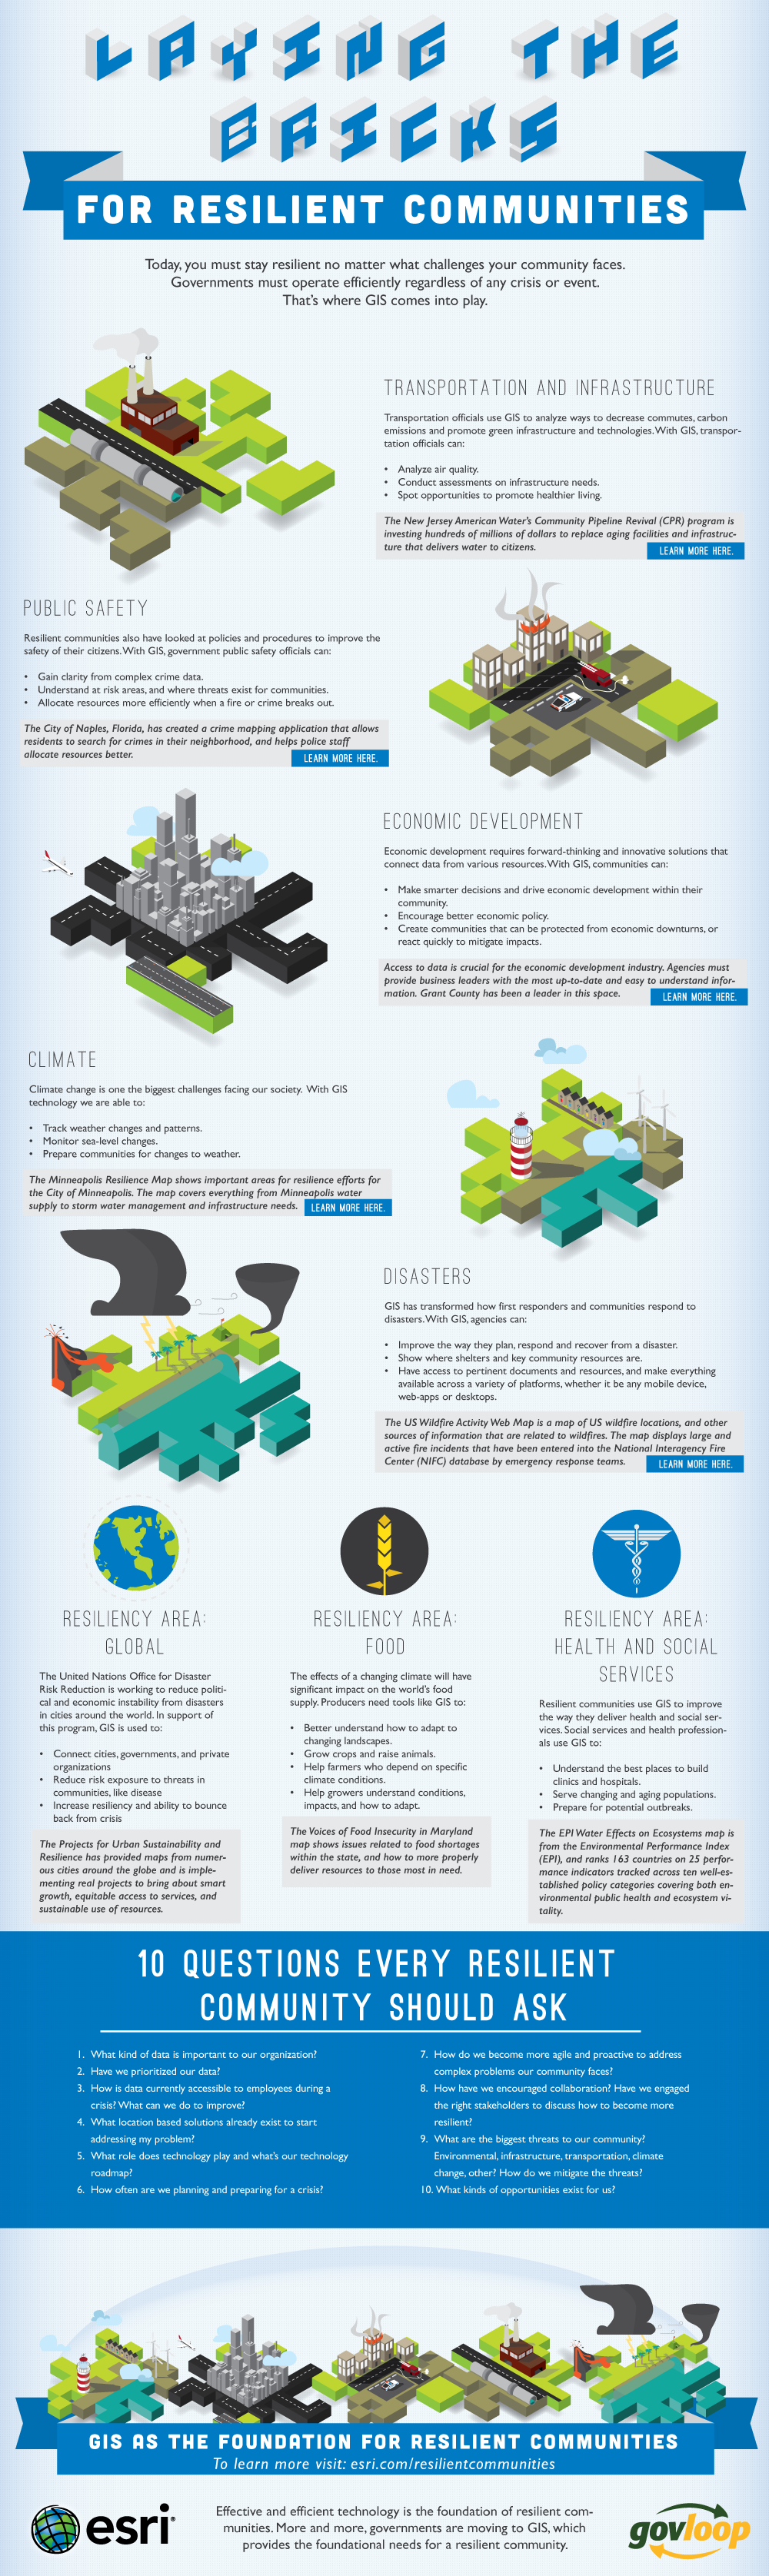 esri_infographic_resilient_cities_FINAL